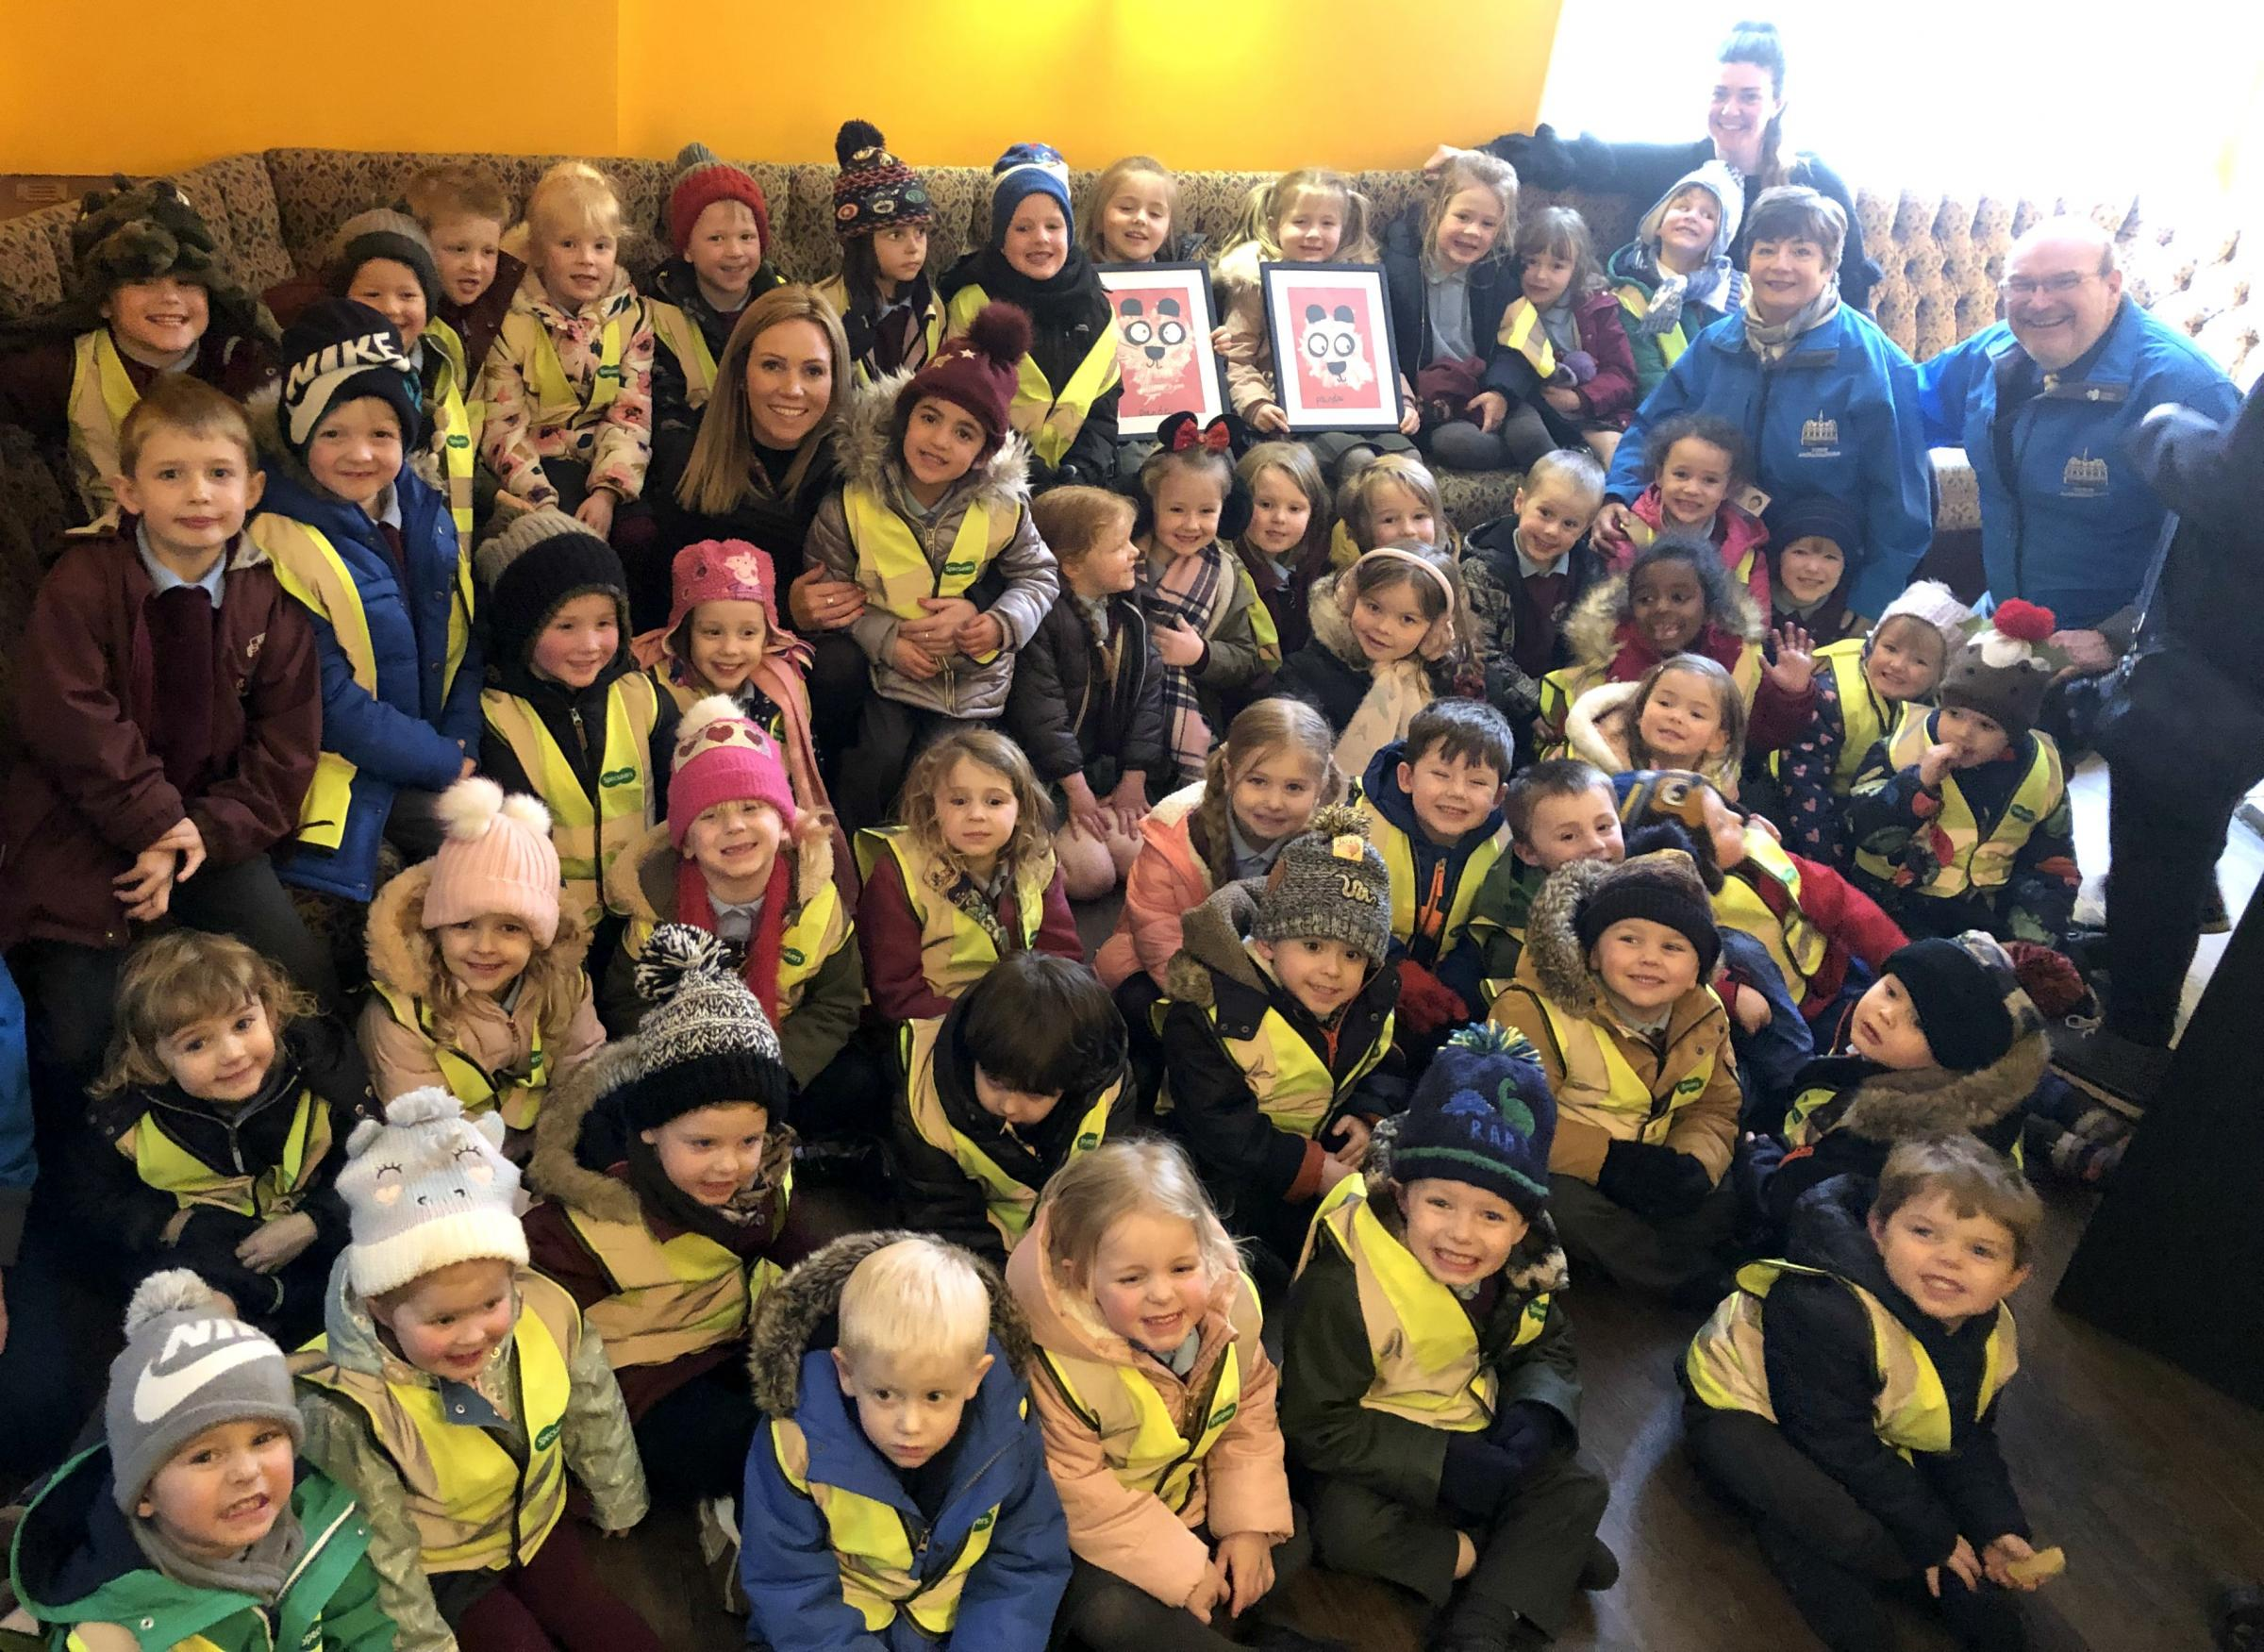 CULTURAL CELEBRATION: Pupils from St Anne's CE Primary School in Bishop Auckland were treated to a day of learning and food tasting